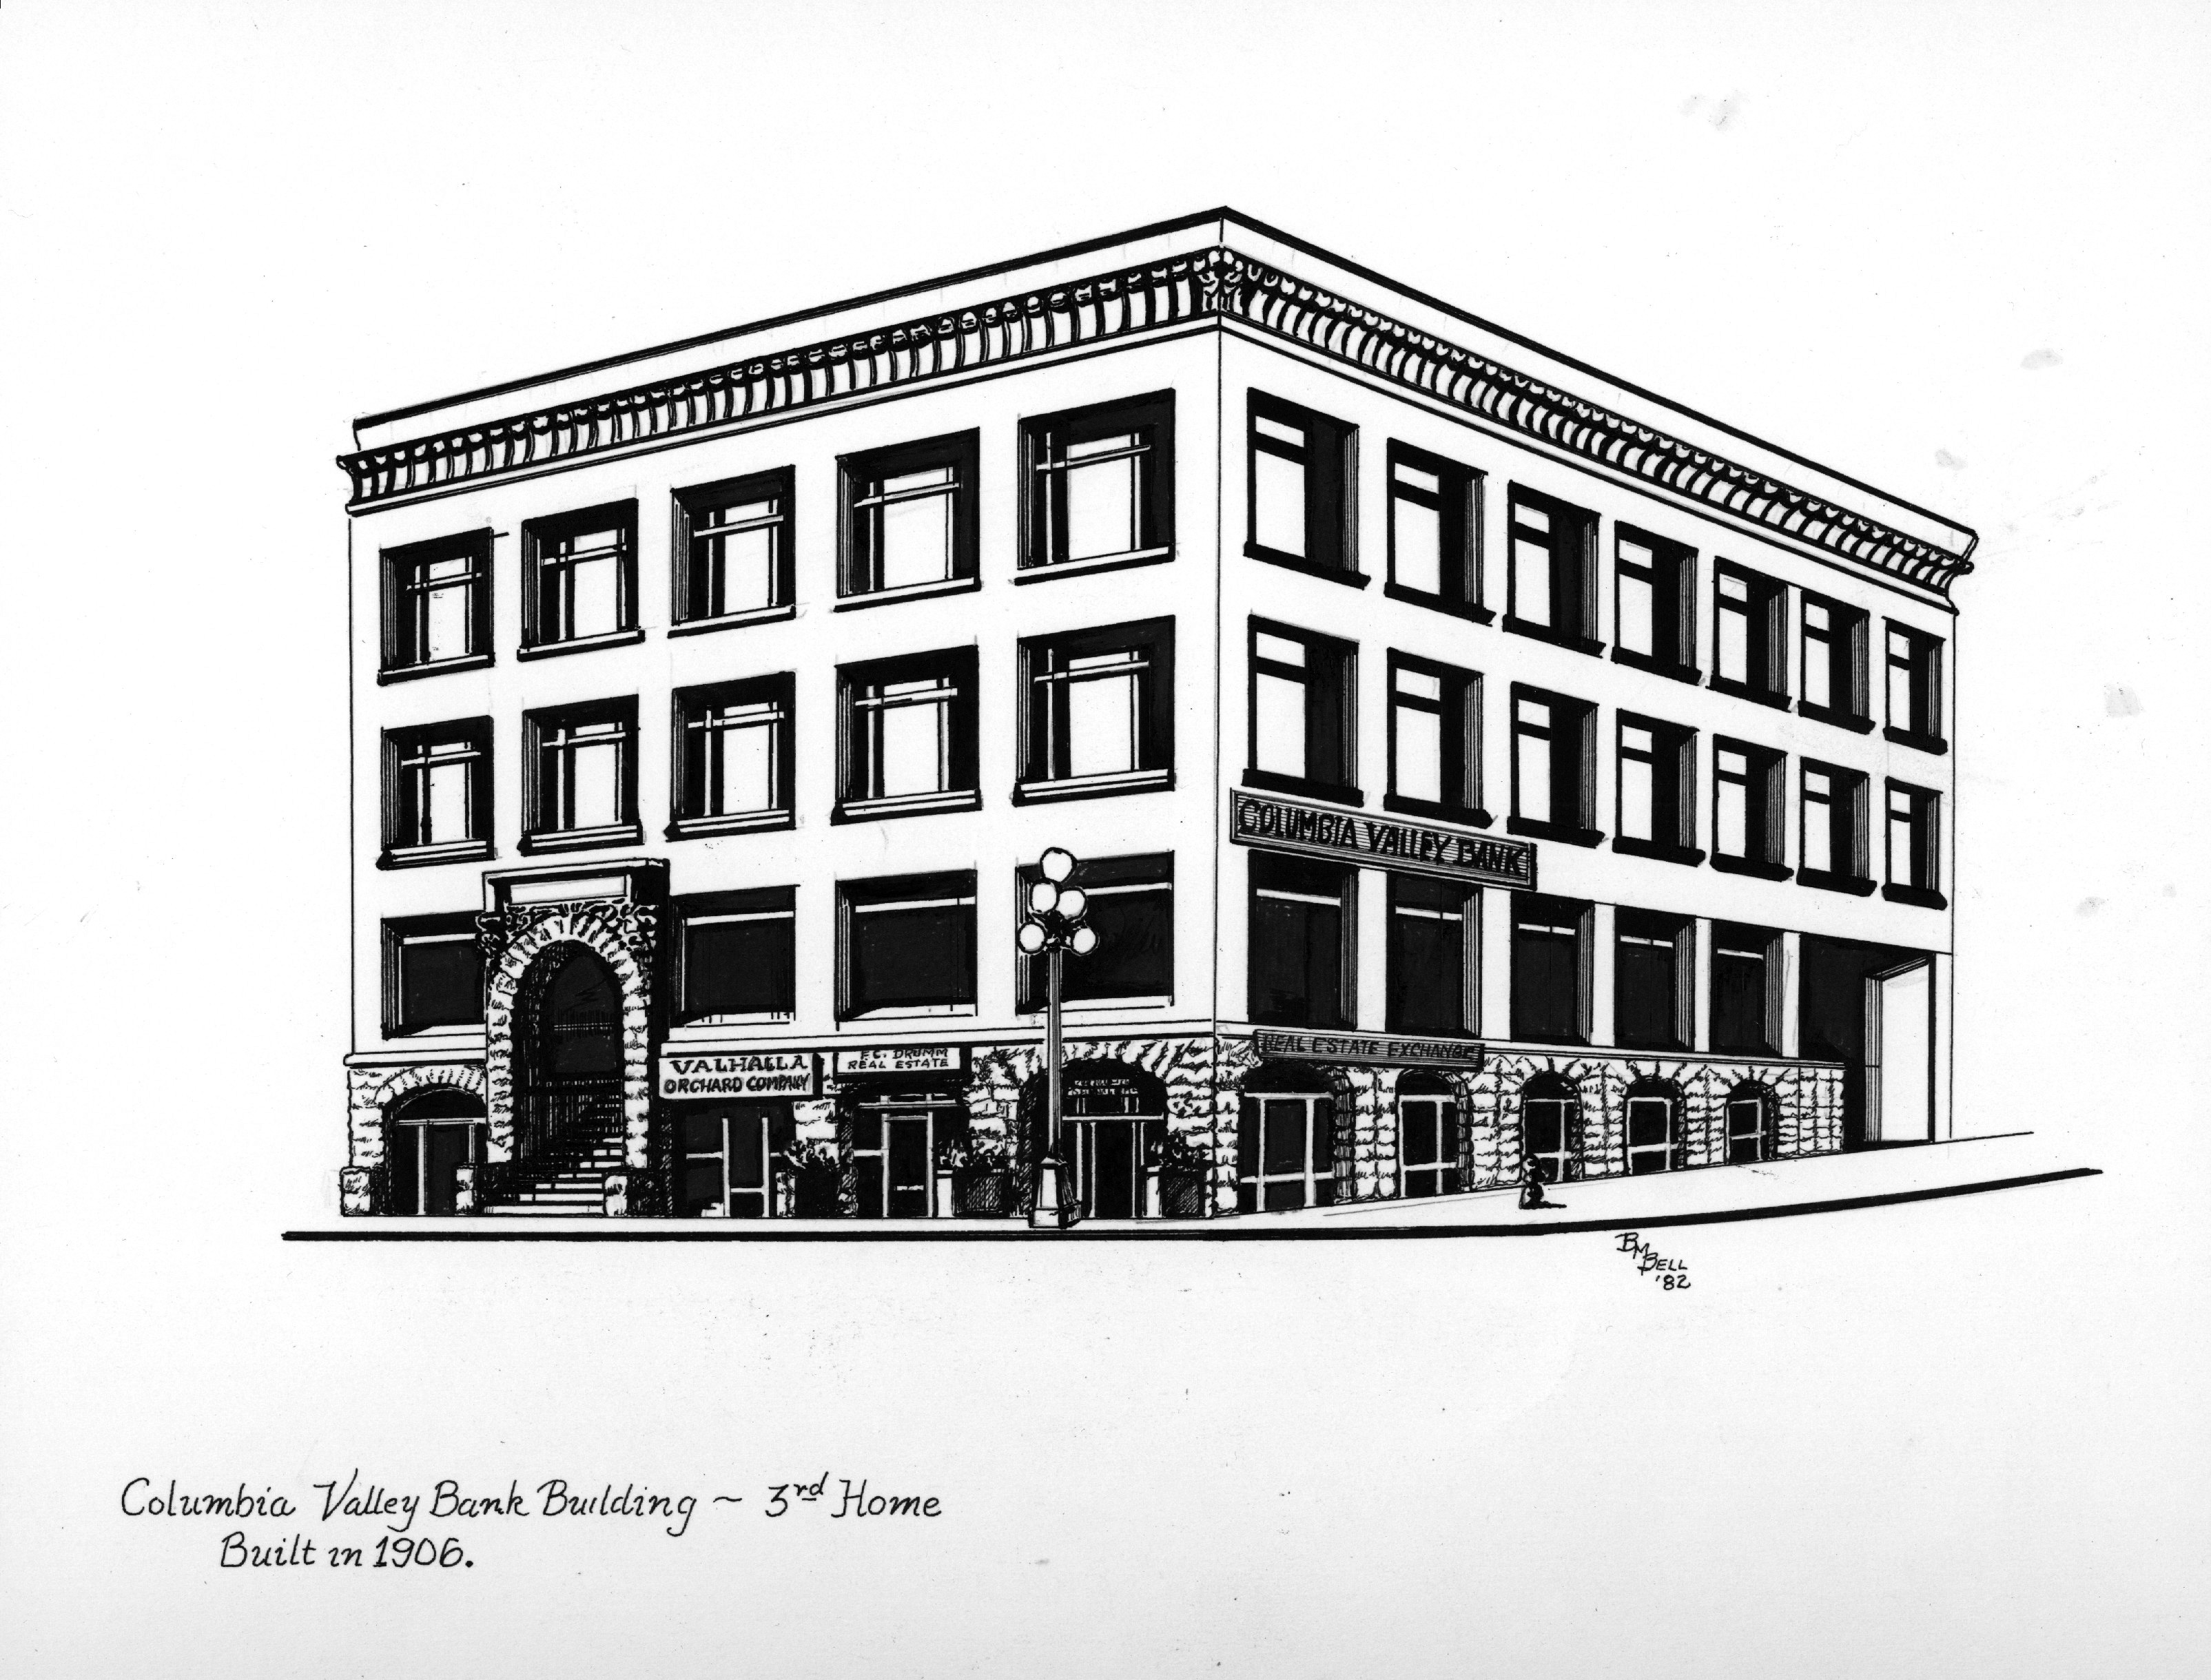 An illustration by artist Betty Bell of the third home of Columbia Valley Bank.